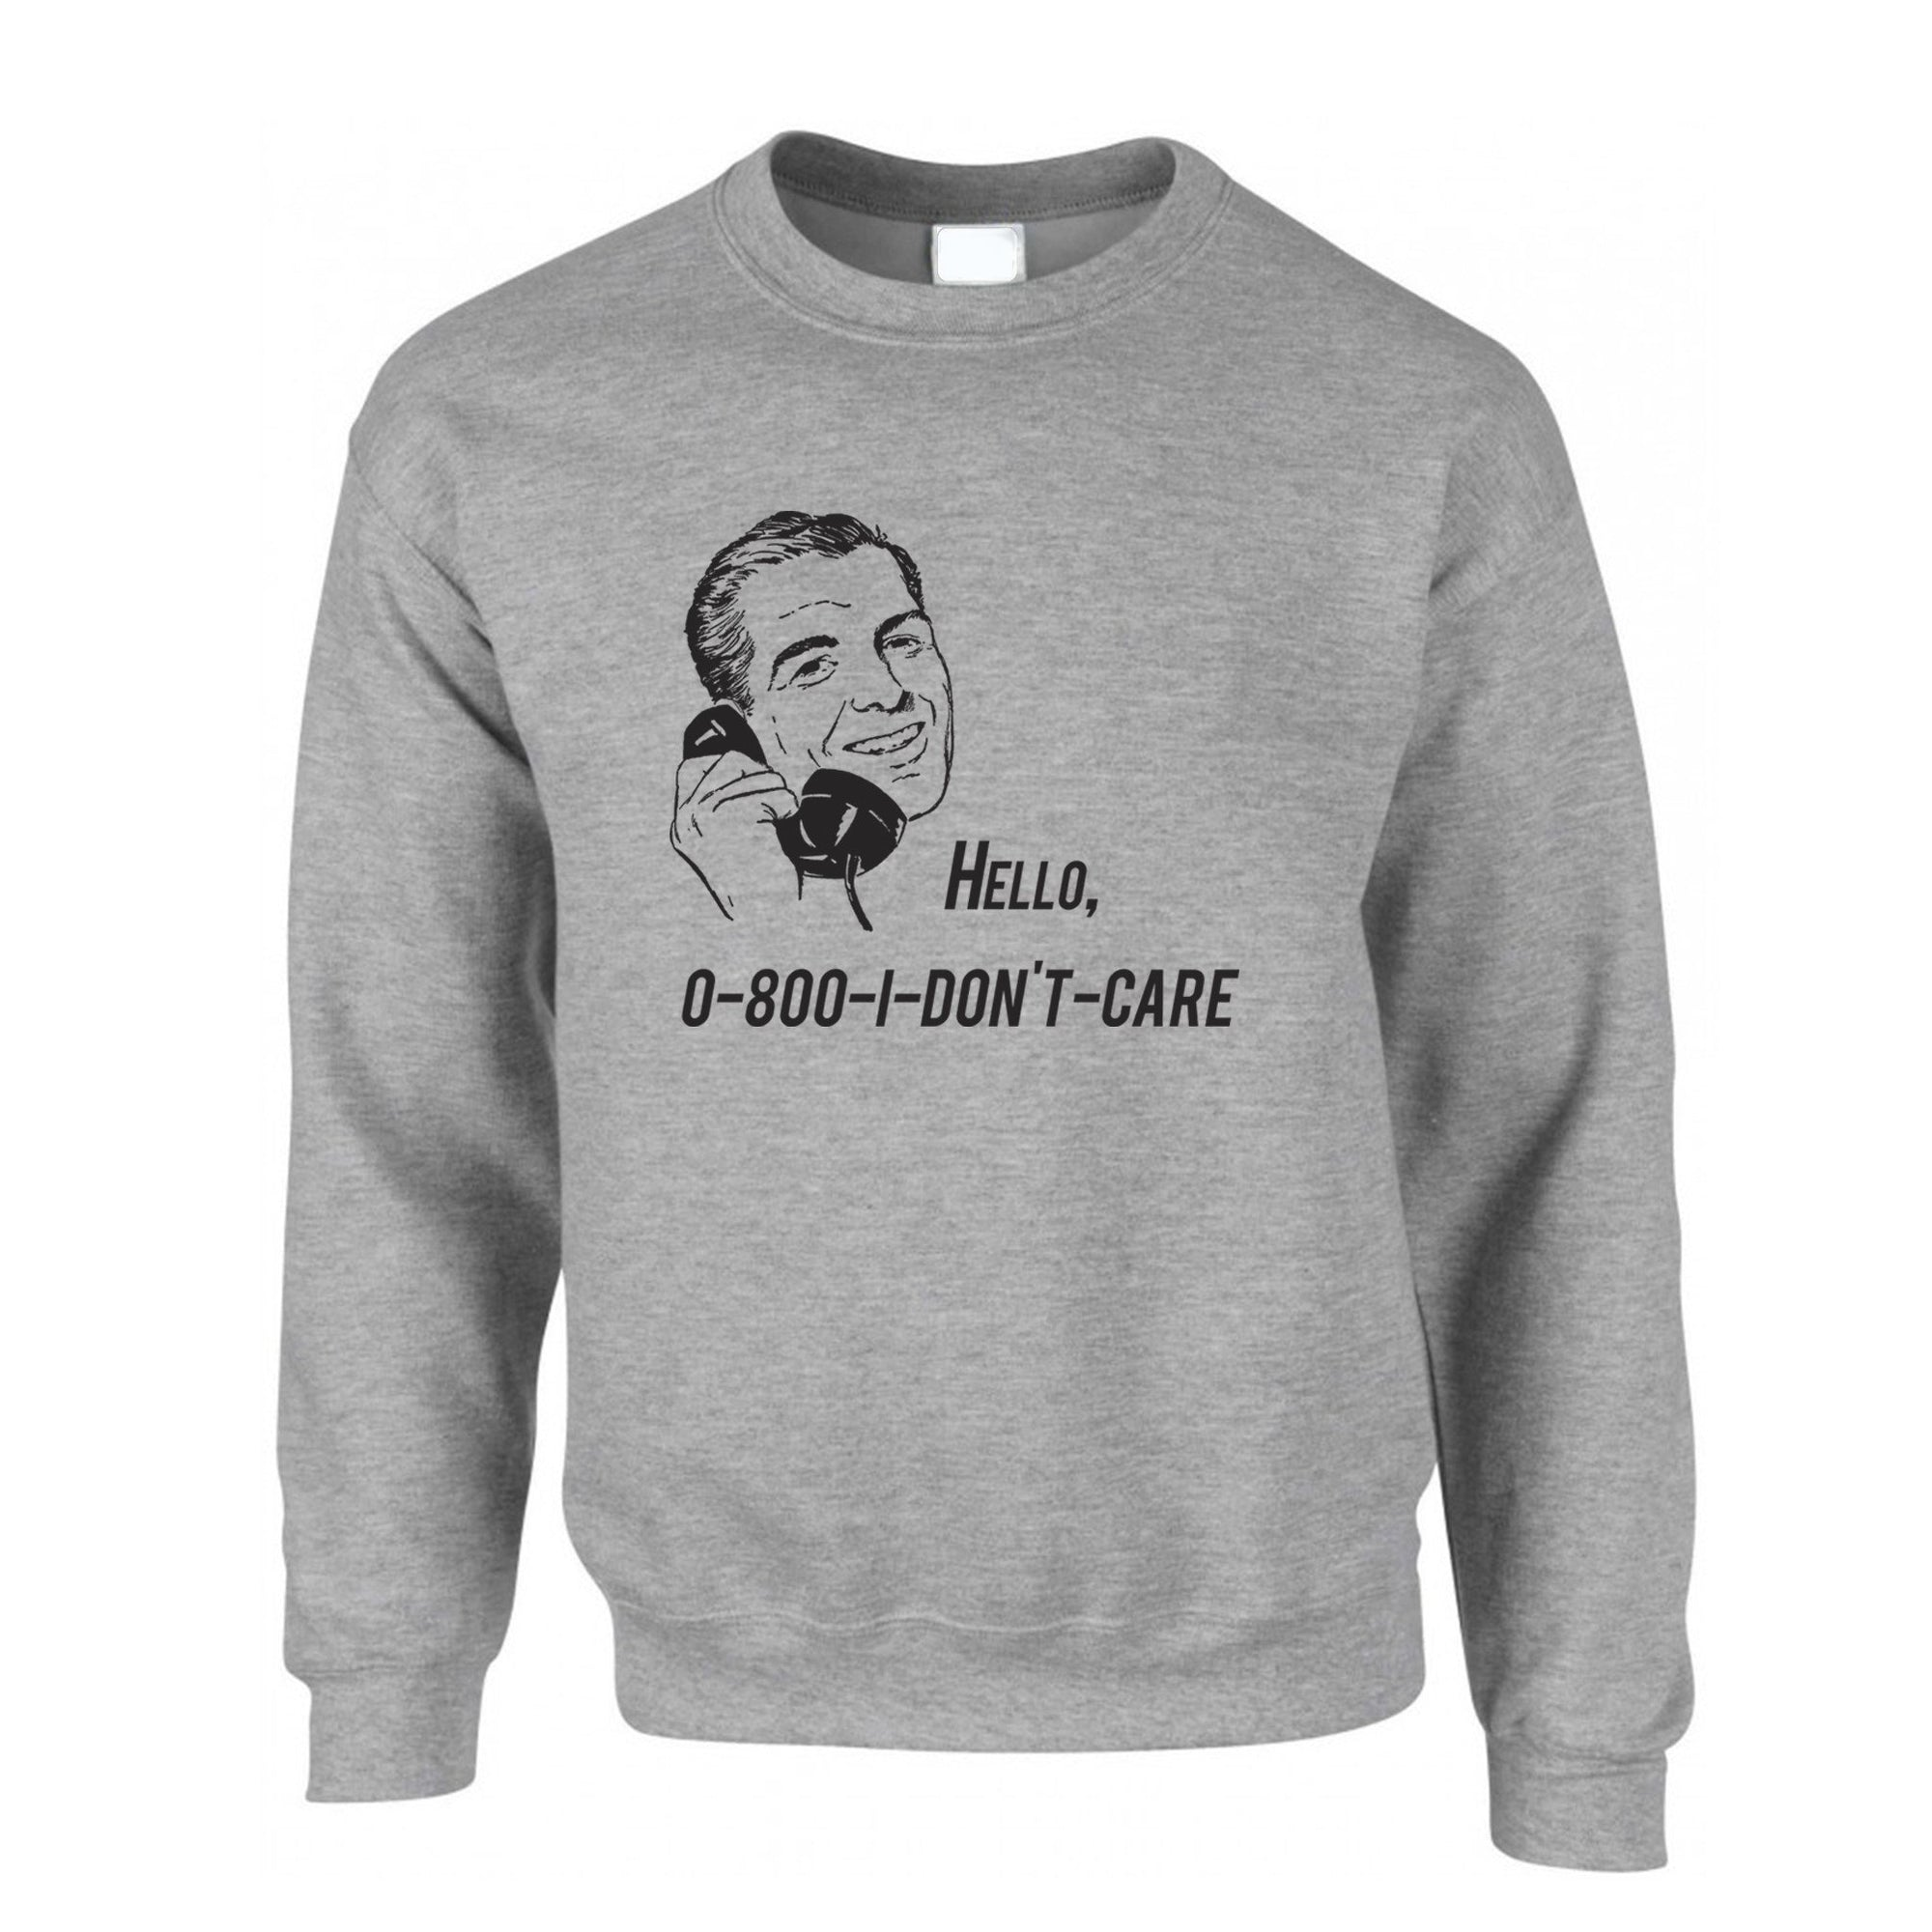 Novelty Jumper Hello, 0800 I Don't Care 1950s Slogan Sweatshirt Sweater